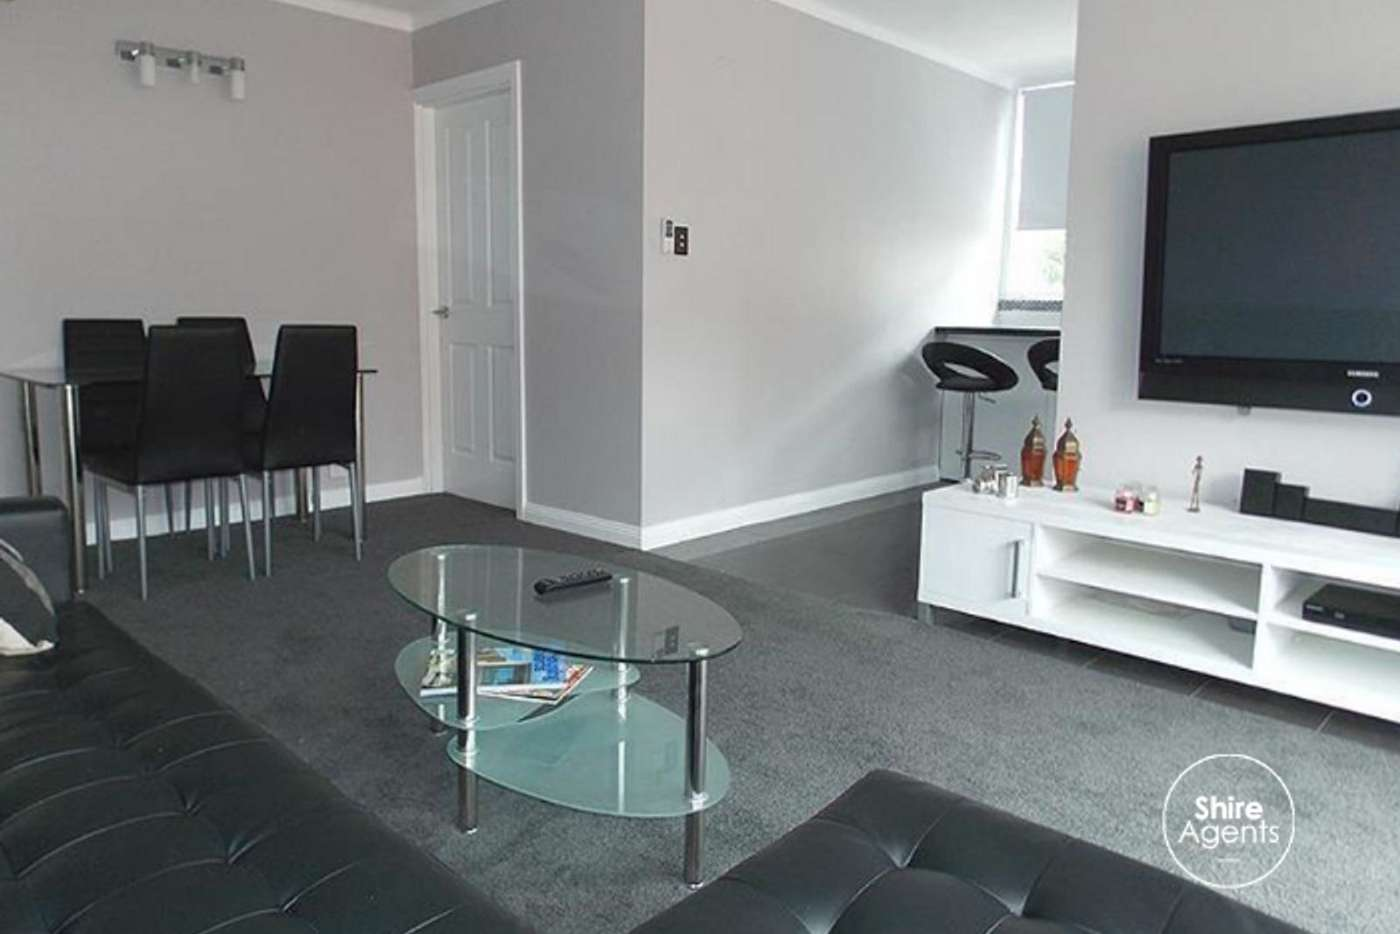 Main view of Homely apartment listing, 3/60 Kingsway, Cronulla NSW 2230